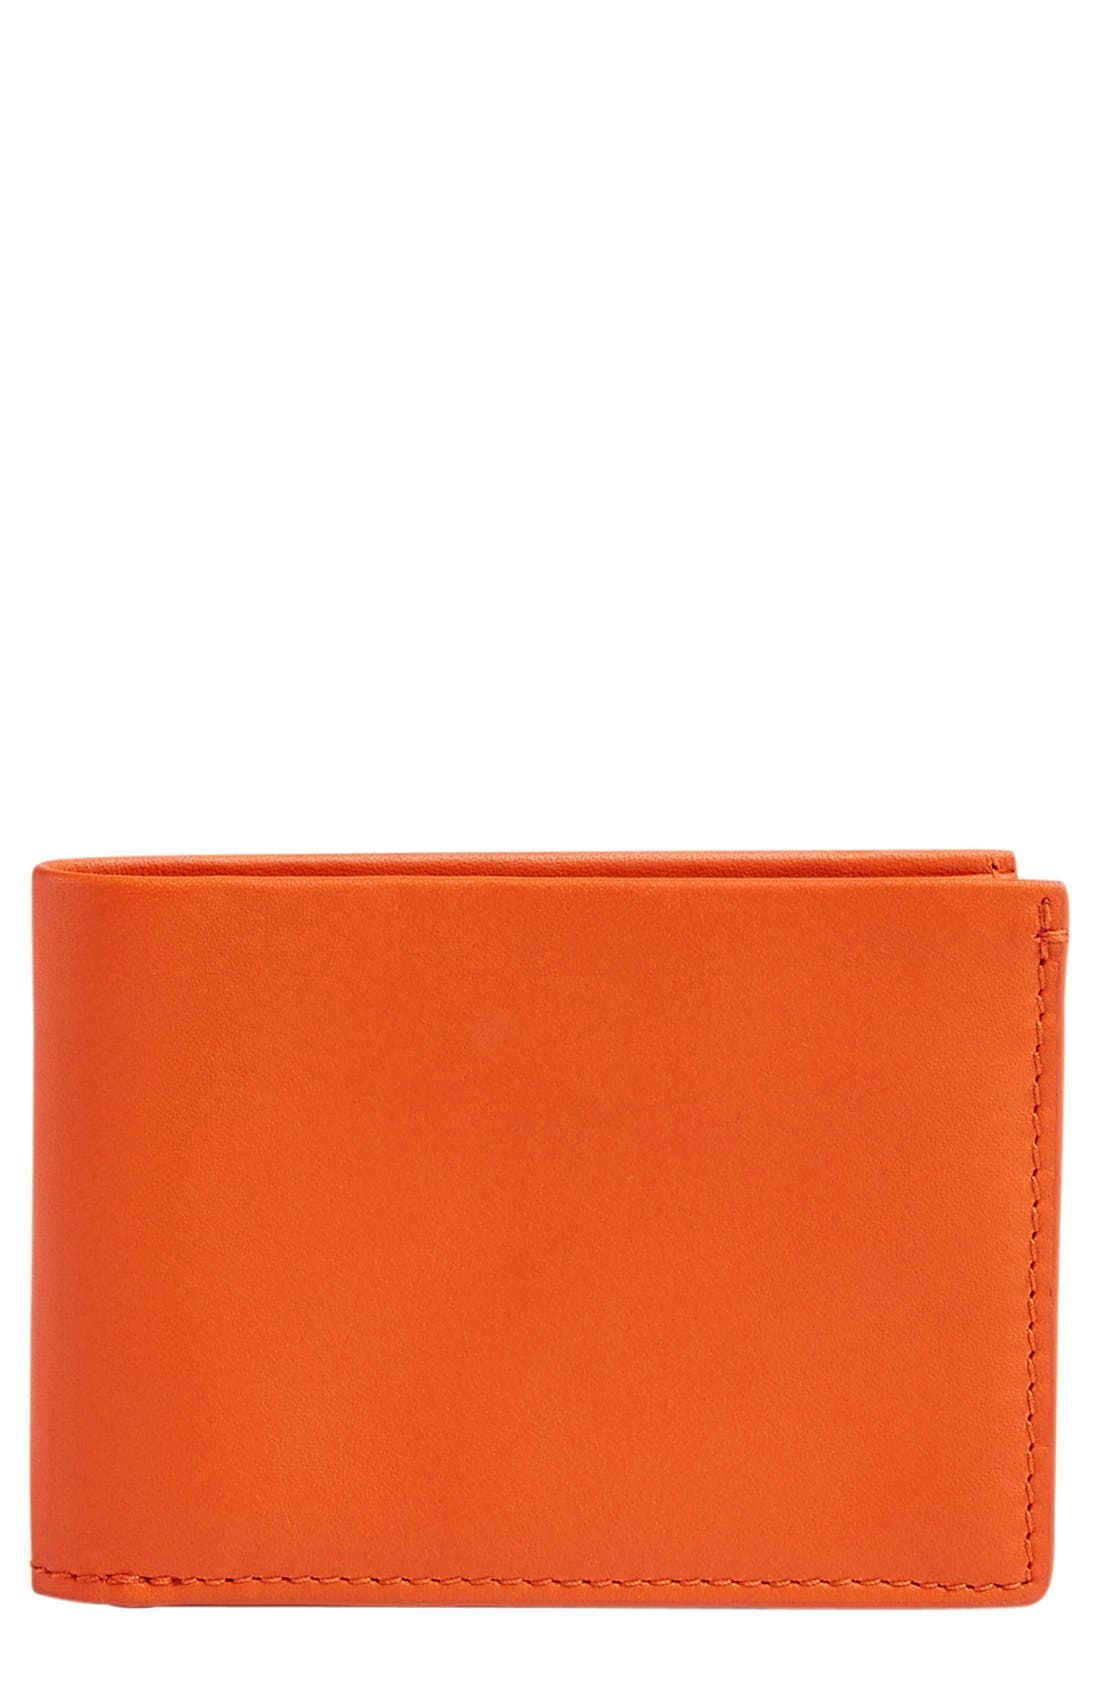 Main Image - Skagen 'Ambold' Leather Wallet